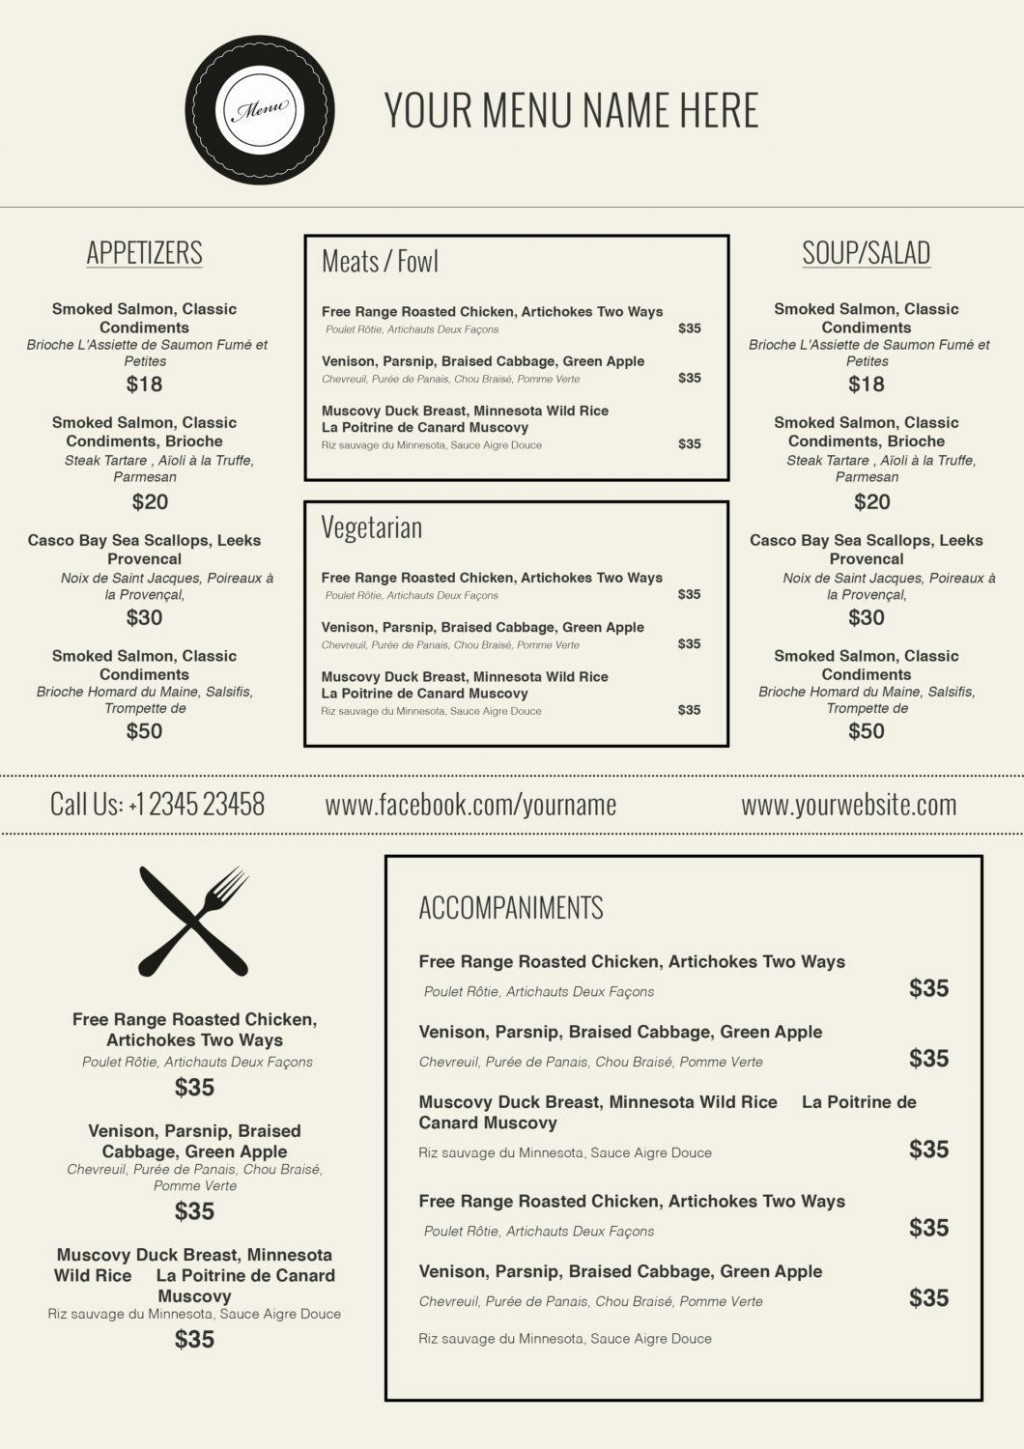 000 Incredible Free Printable Menu Template Highest Quality  For Dinner Party FamilyLarge